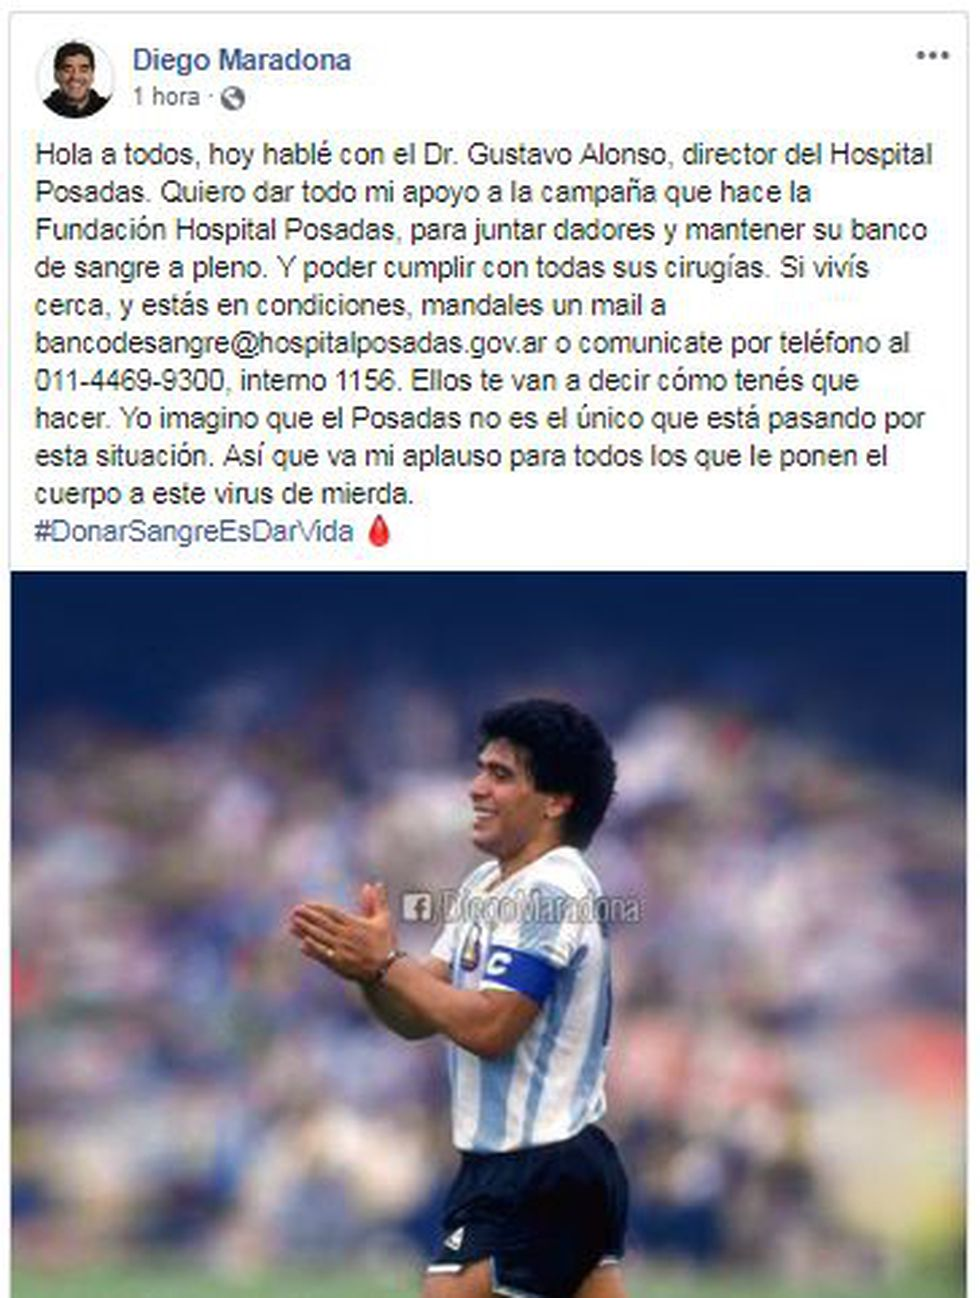 The message Diego Maradona shared on Instagram.